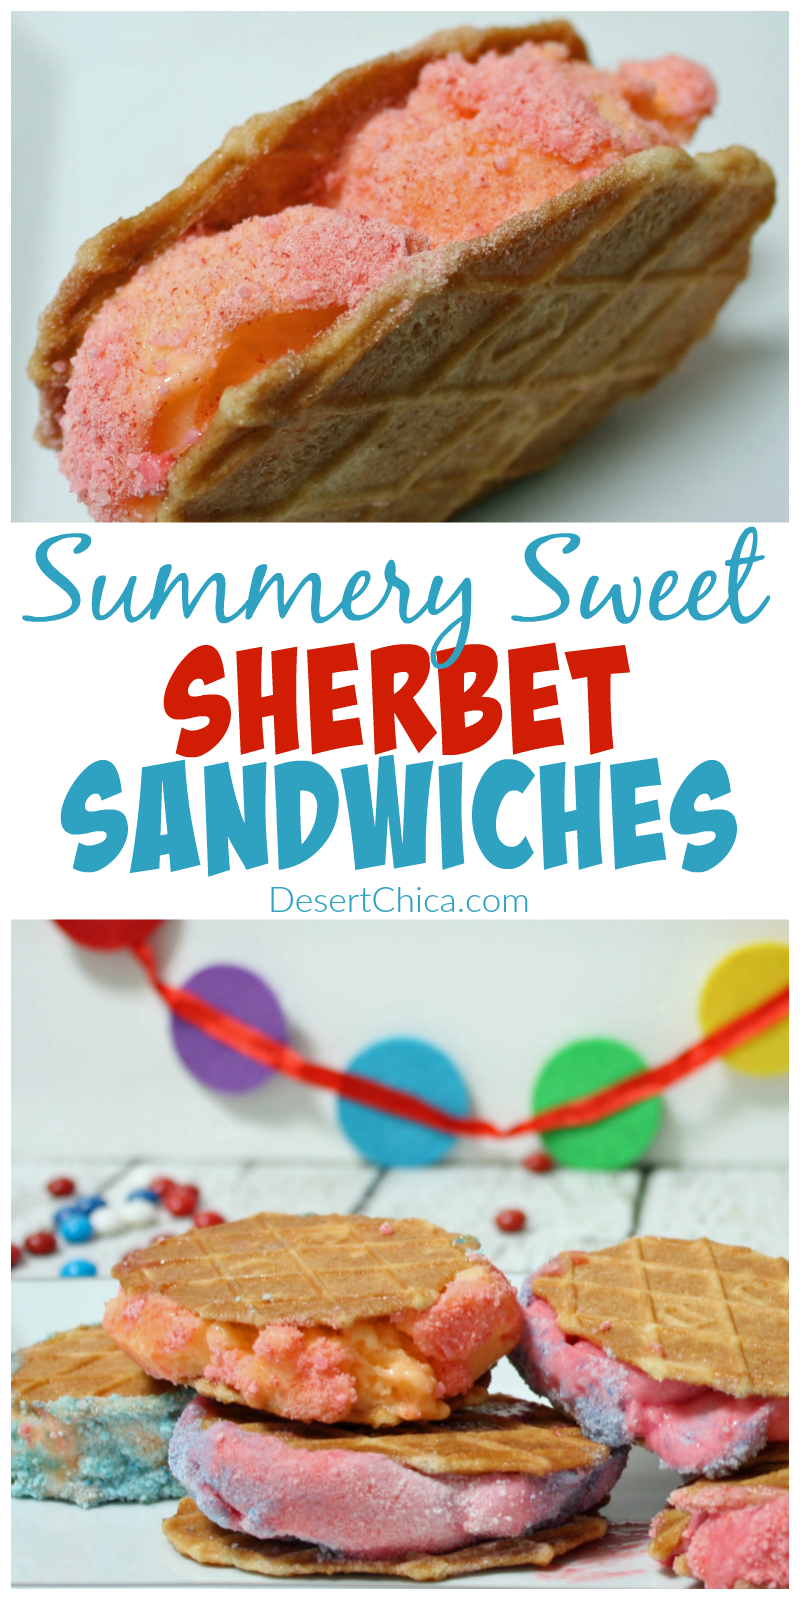 How to make summery sweet sherbet sandwiches